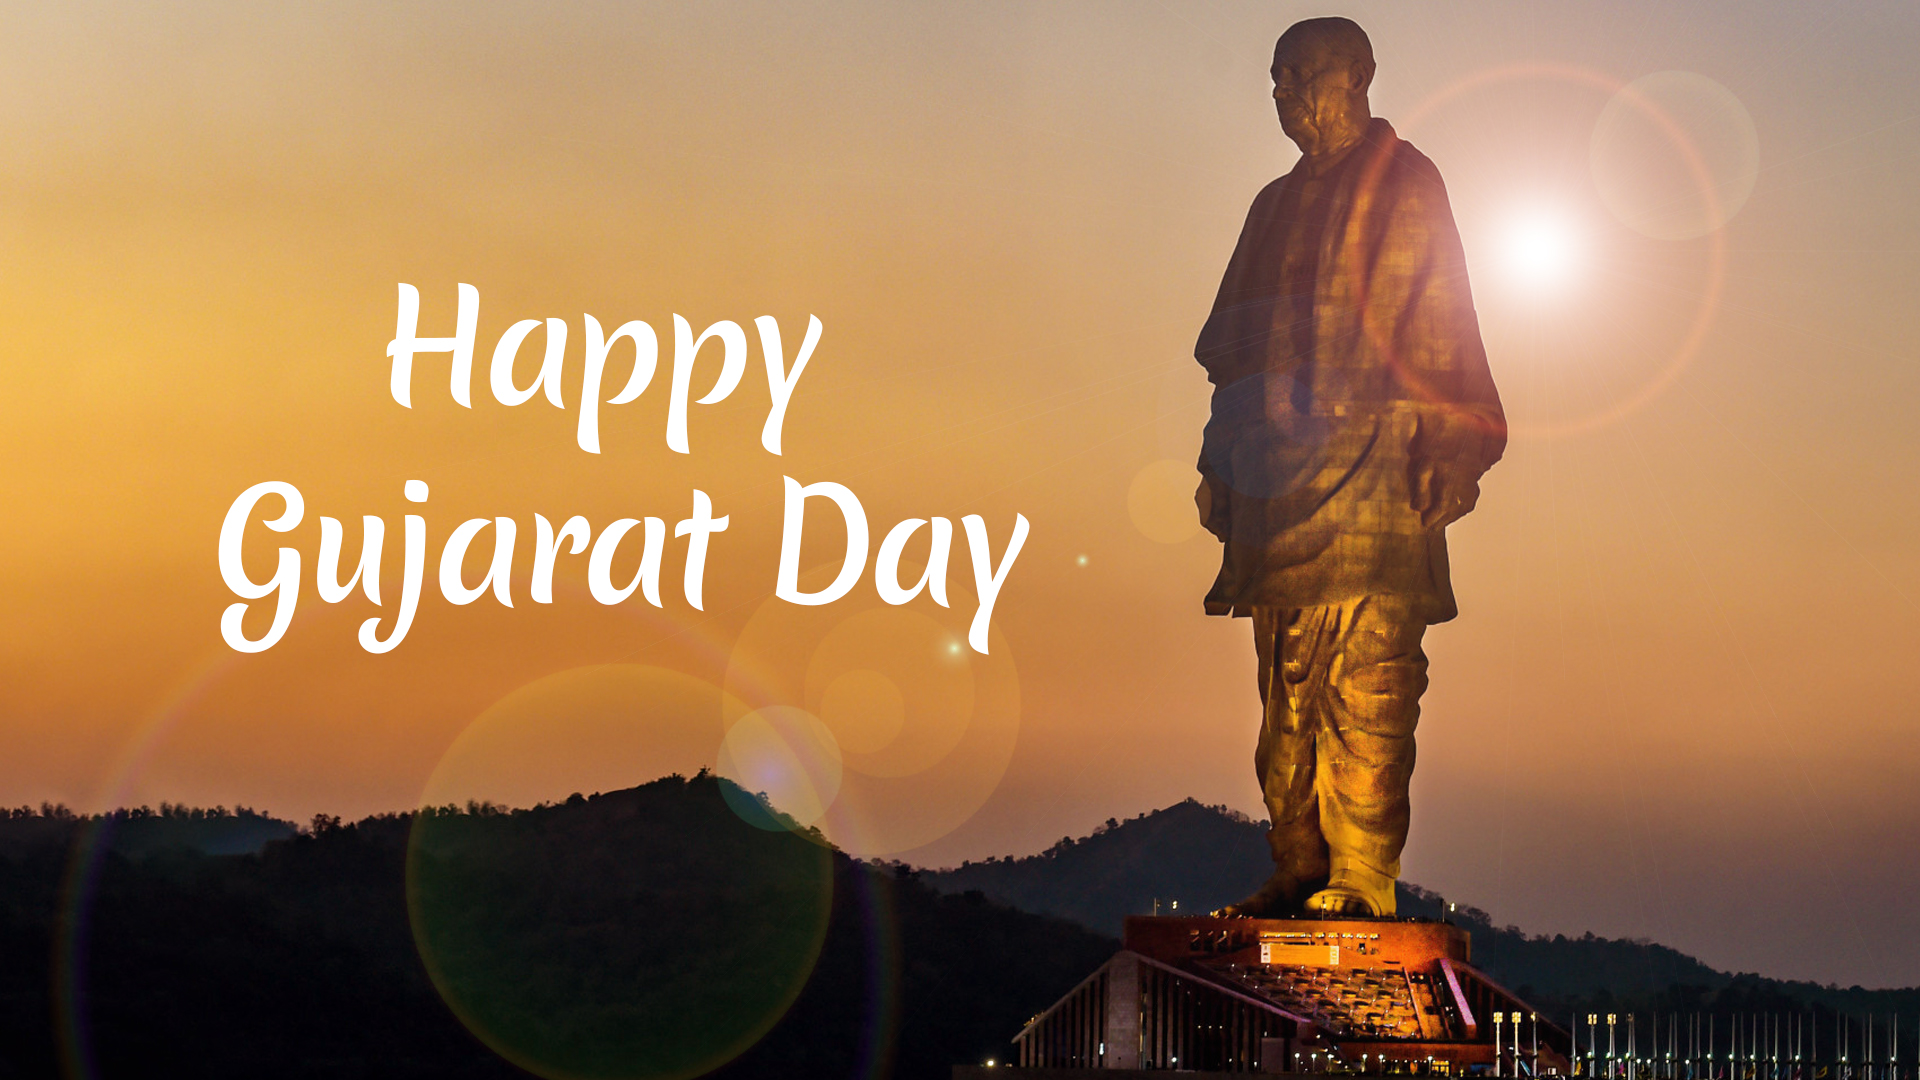 Gujarat Day Images With Quotes for Free Download Online